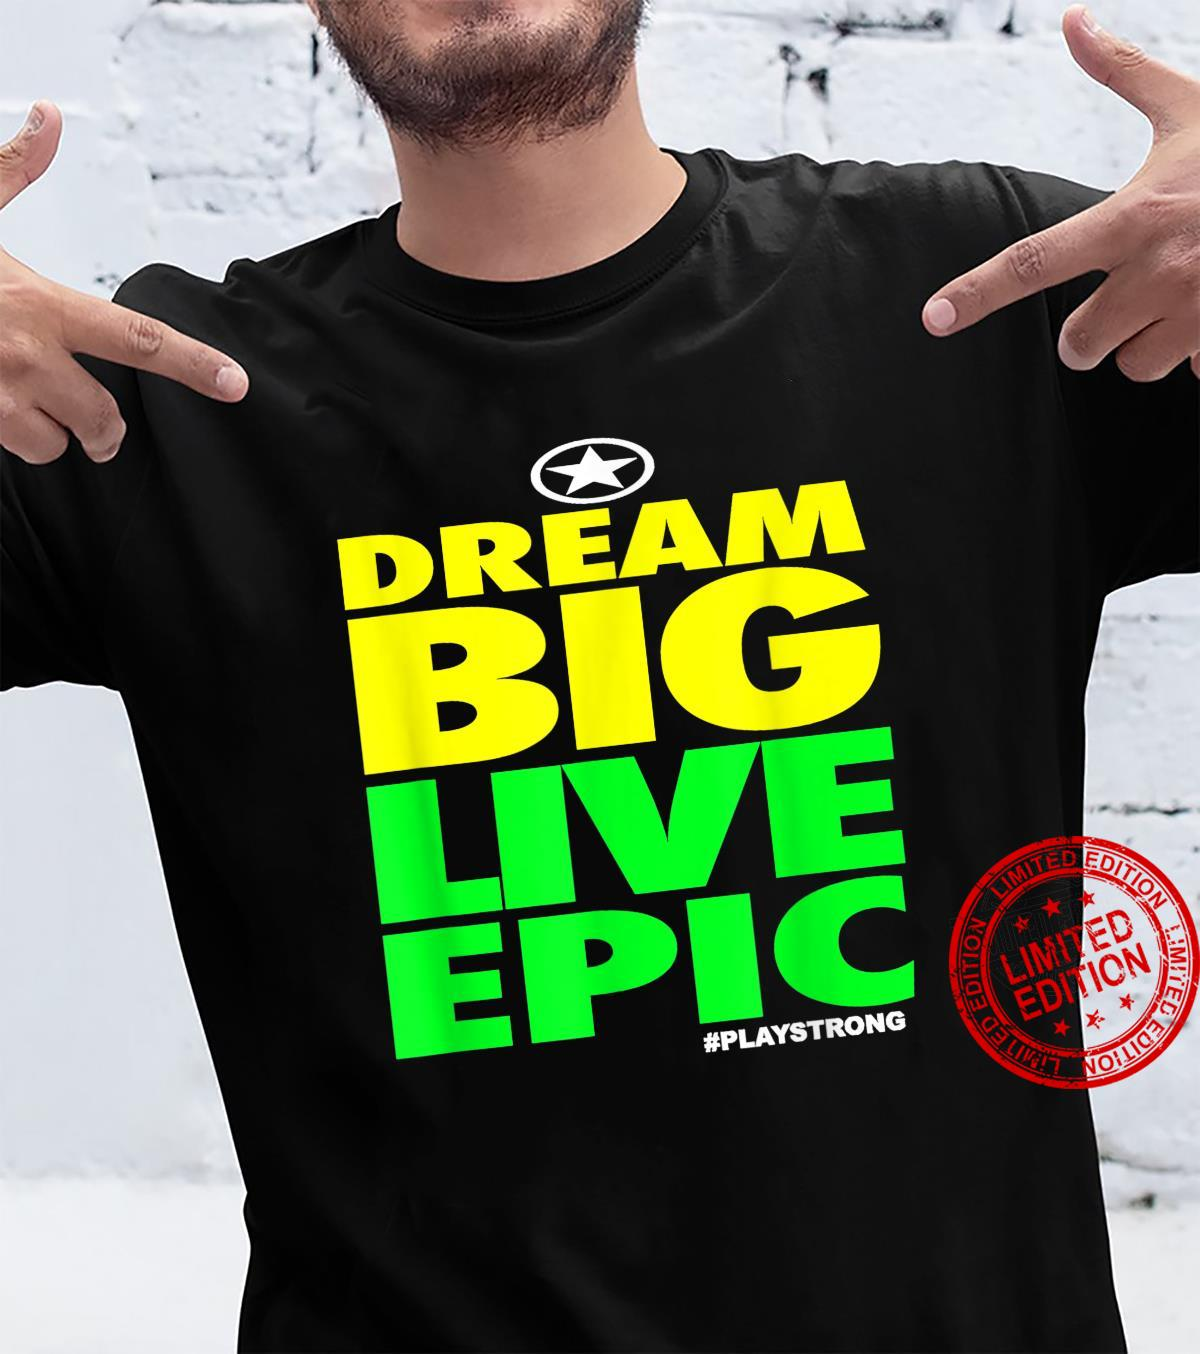 Play Strong DREAM BIG LIVE EPIC #playstrong Shirt